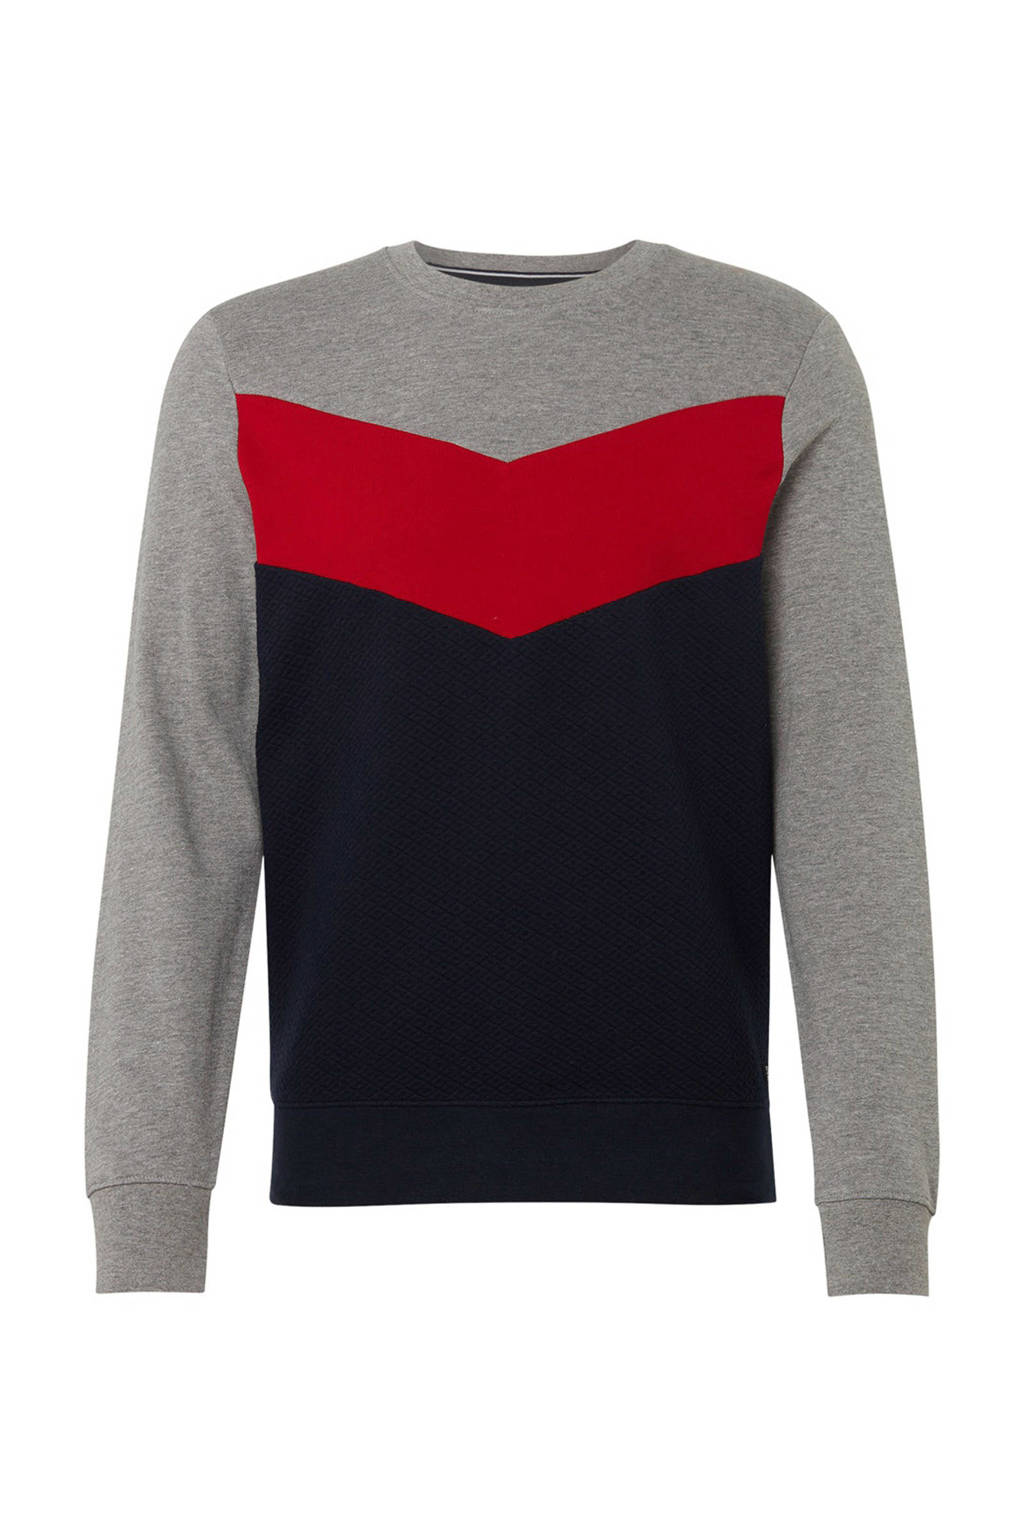 Tom Tailor sweater grijs/marine, Grijs/marine